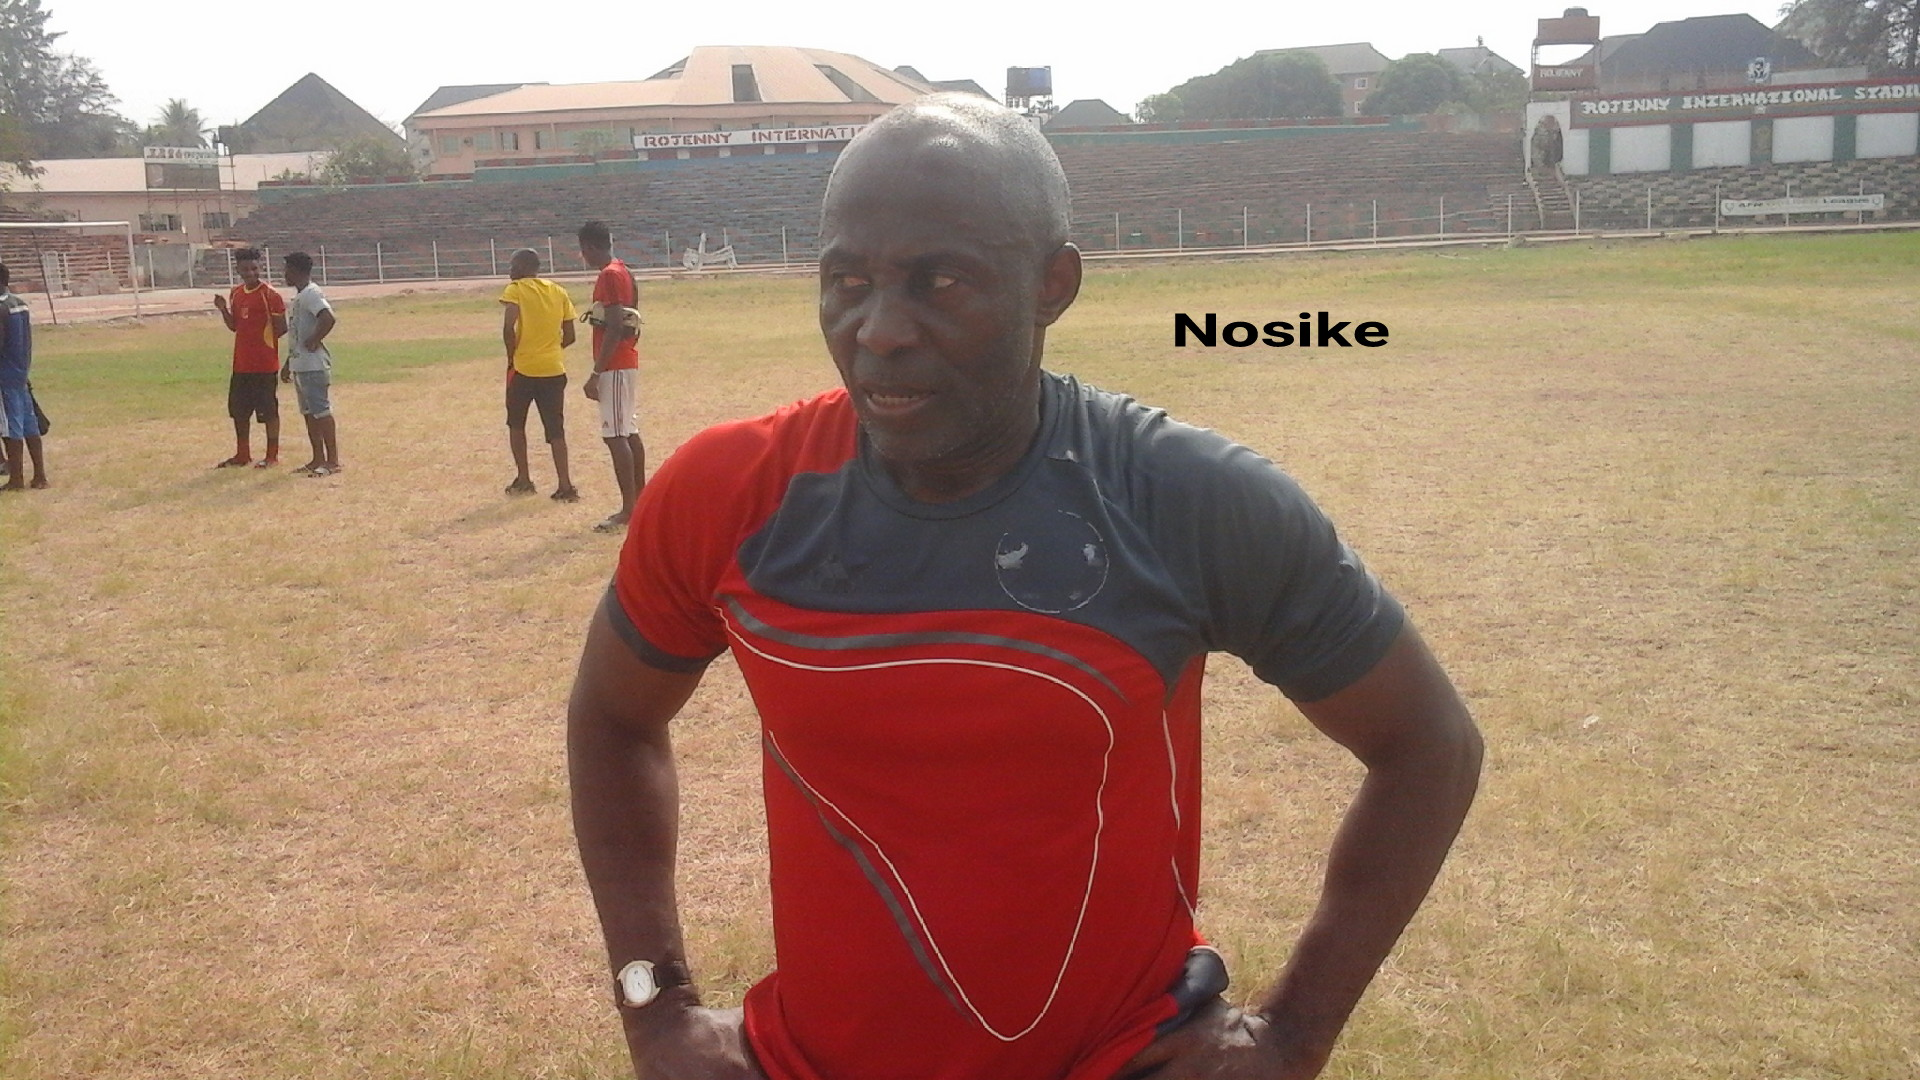 Nnewi United Set For Unveiling, Hire Ex-Rangers Assistant Coach Nosike